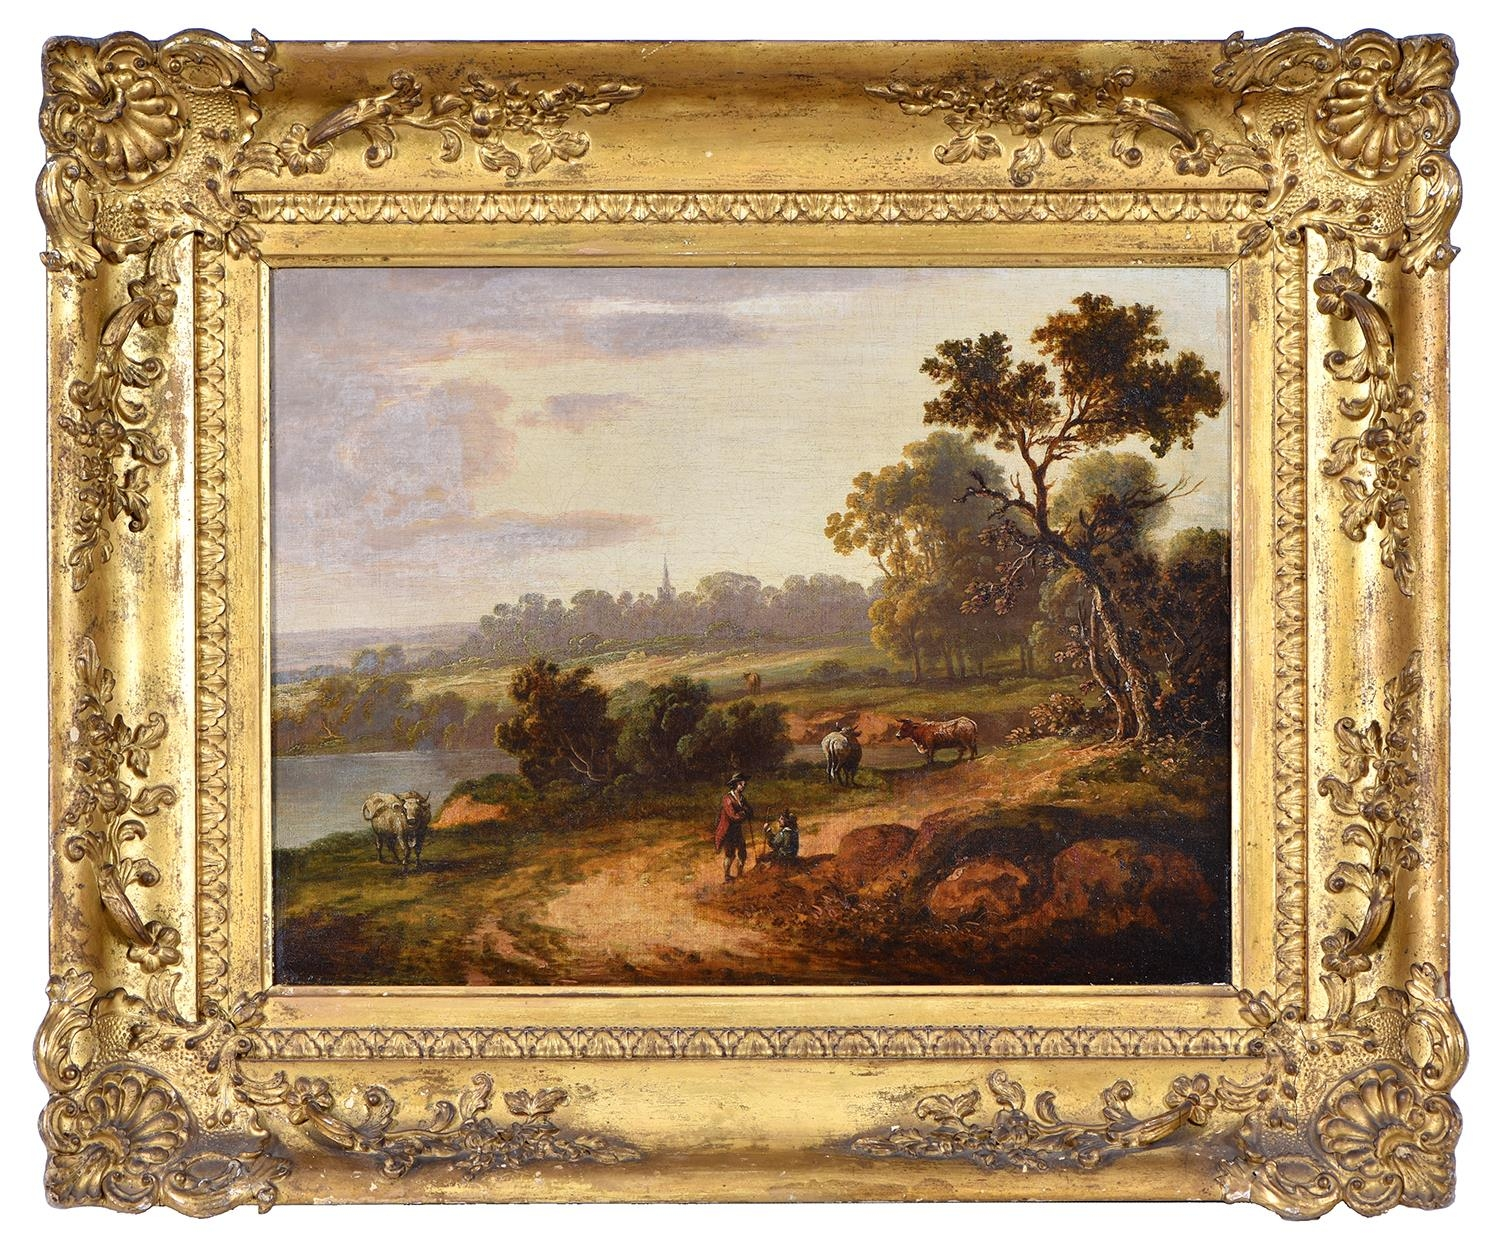 English School, early 19th century ' Wooded Landscape with Figures and Livestock; A Woman and - Image 4 of 6